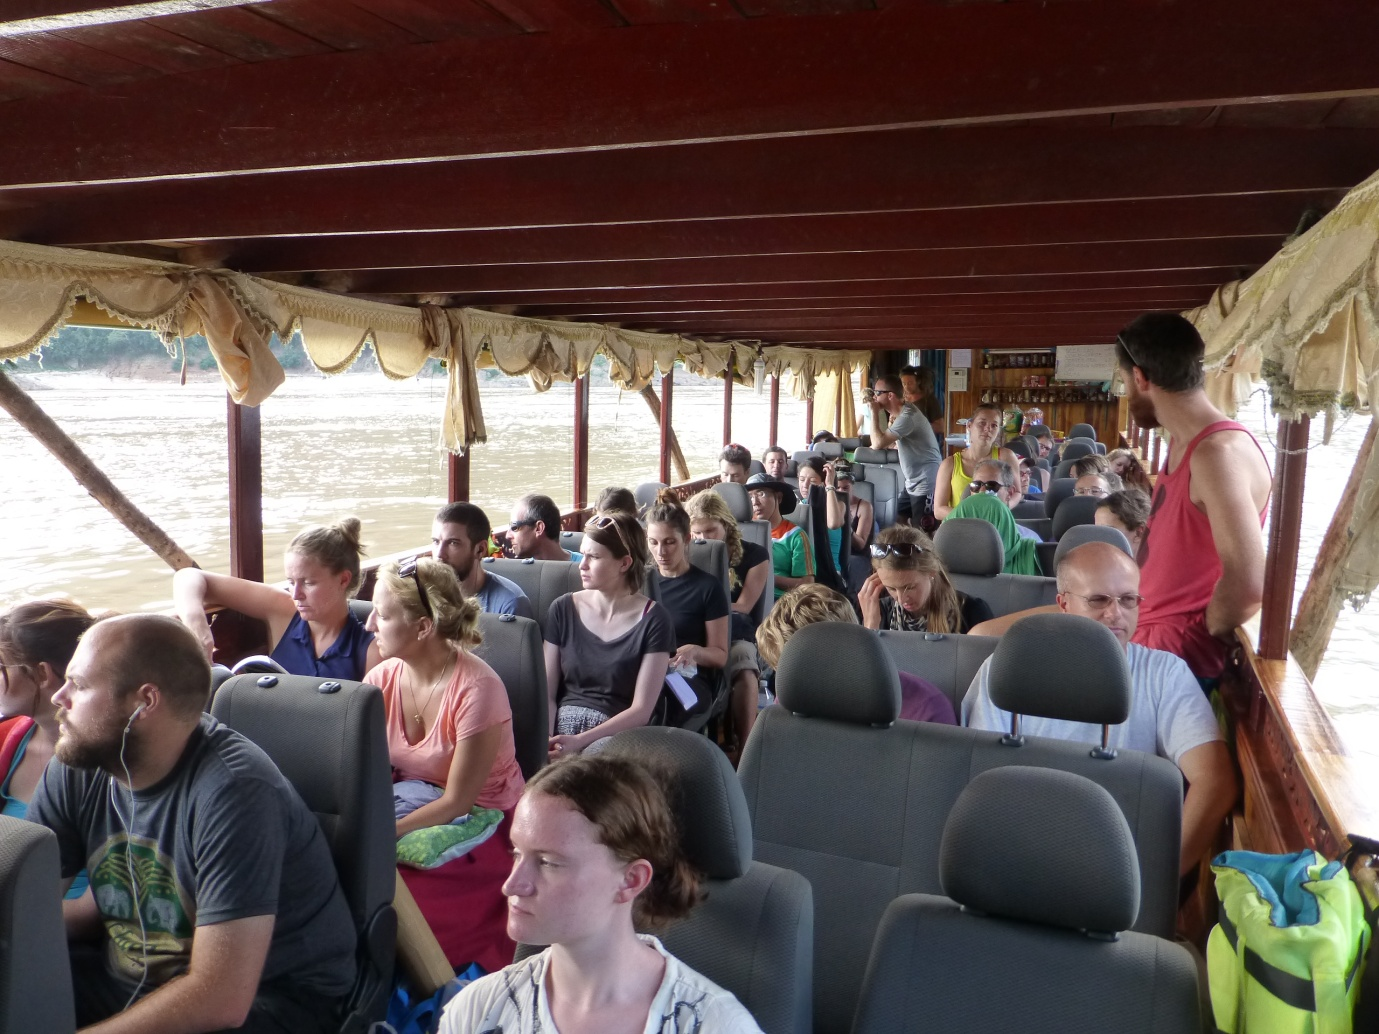 Traveling by slow boat is an amazing part of your itinerary